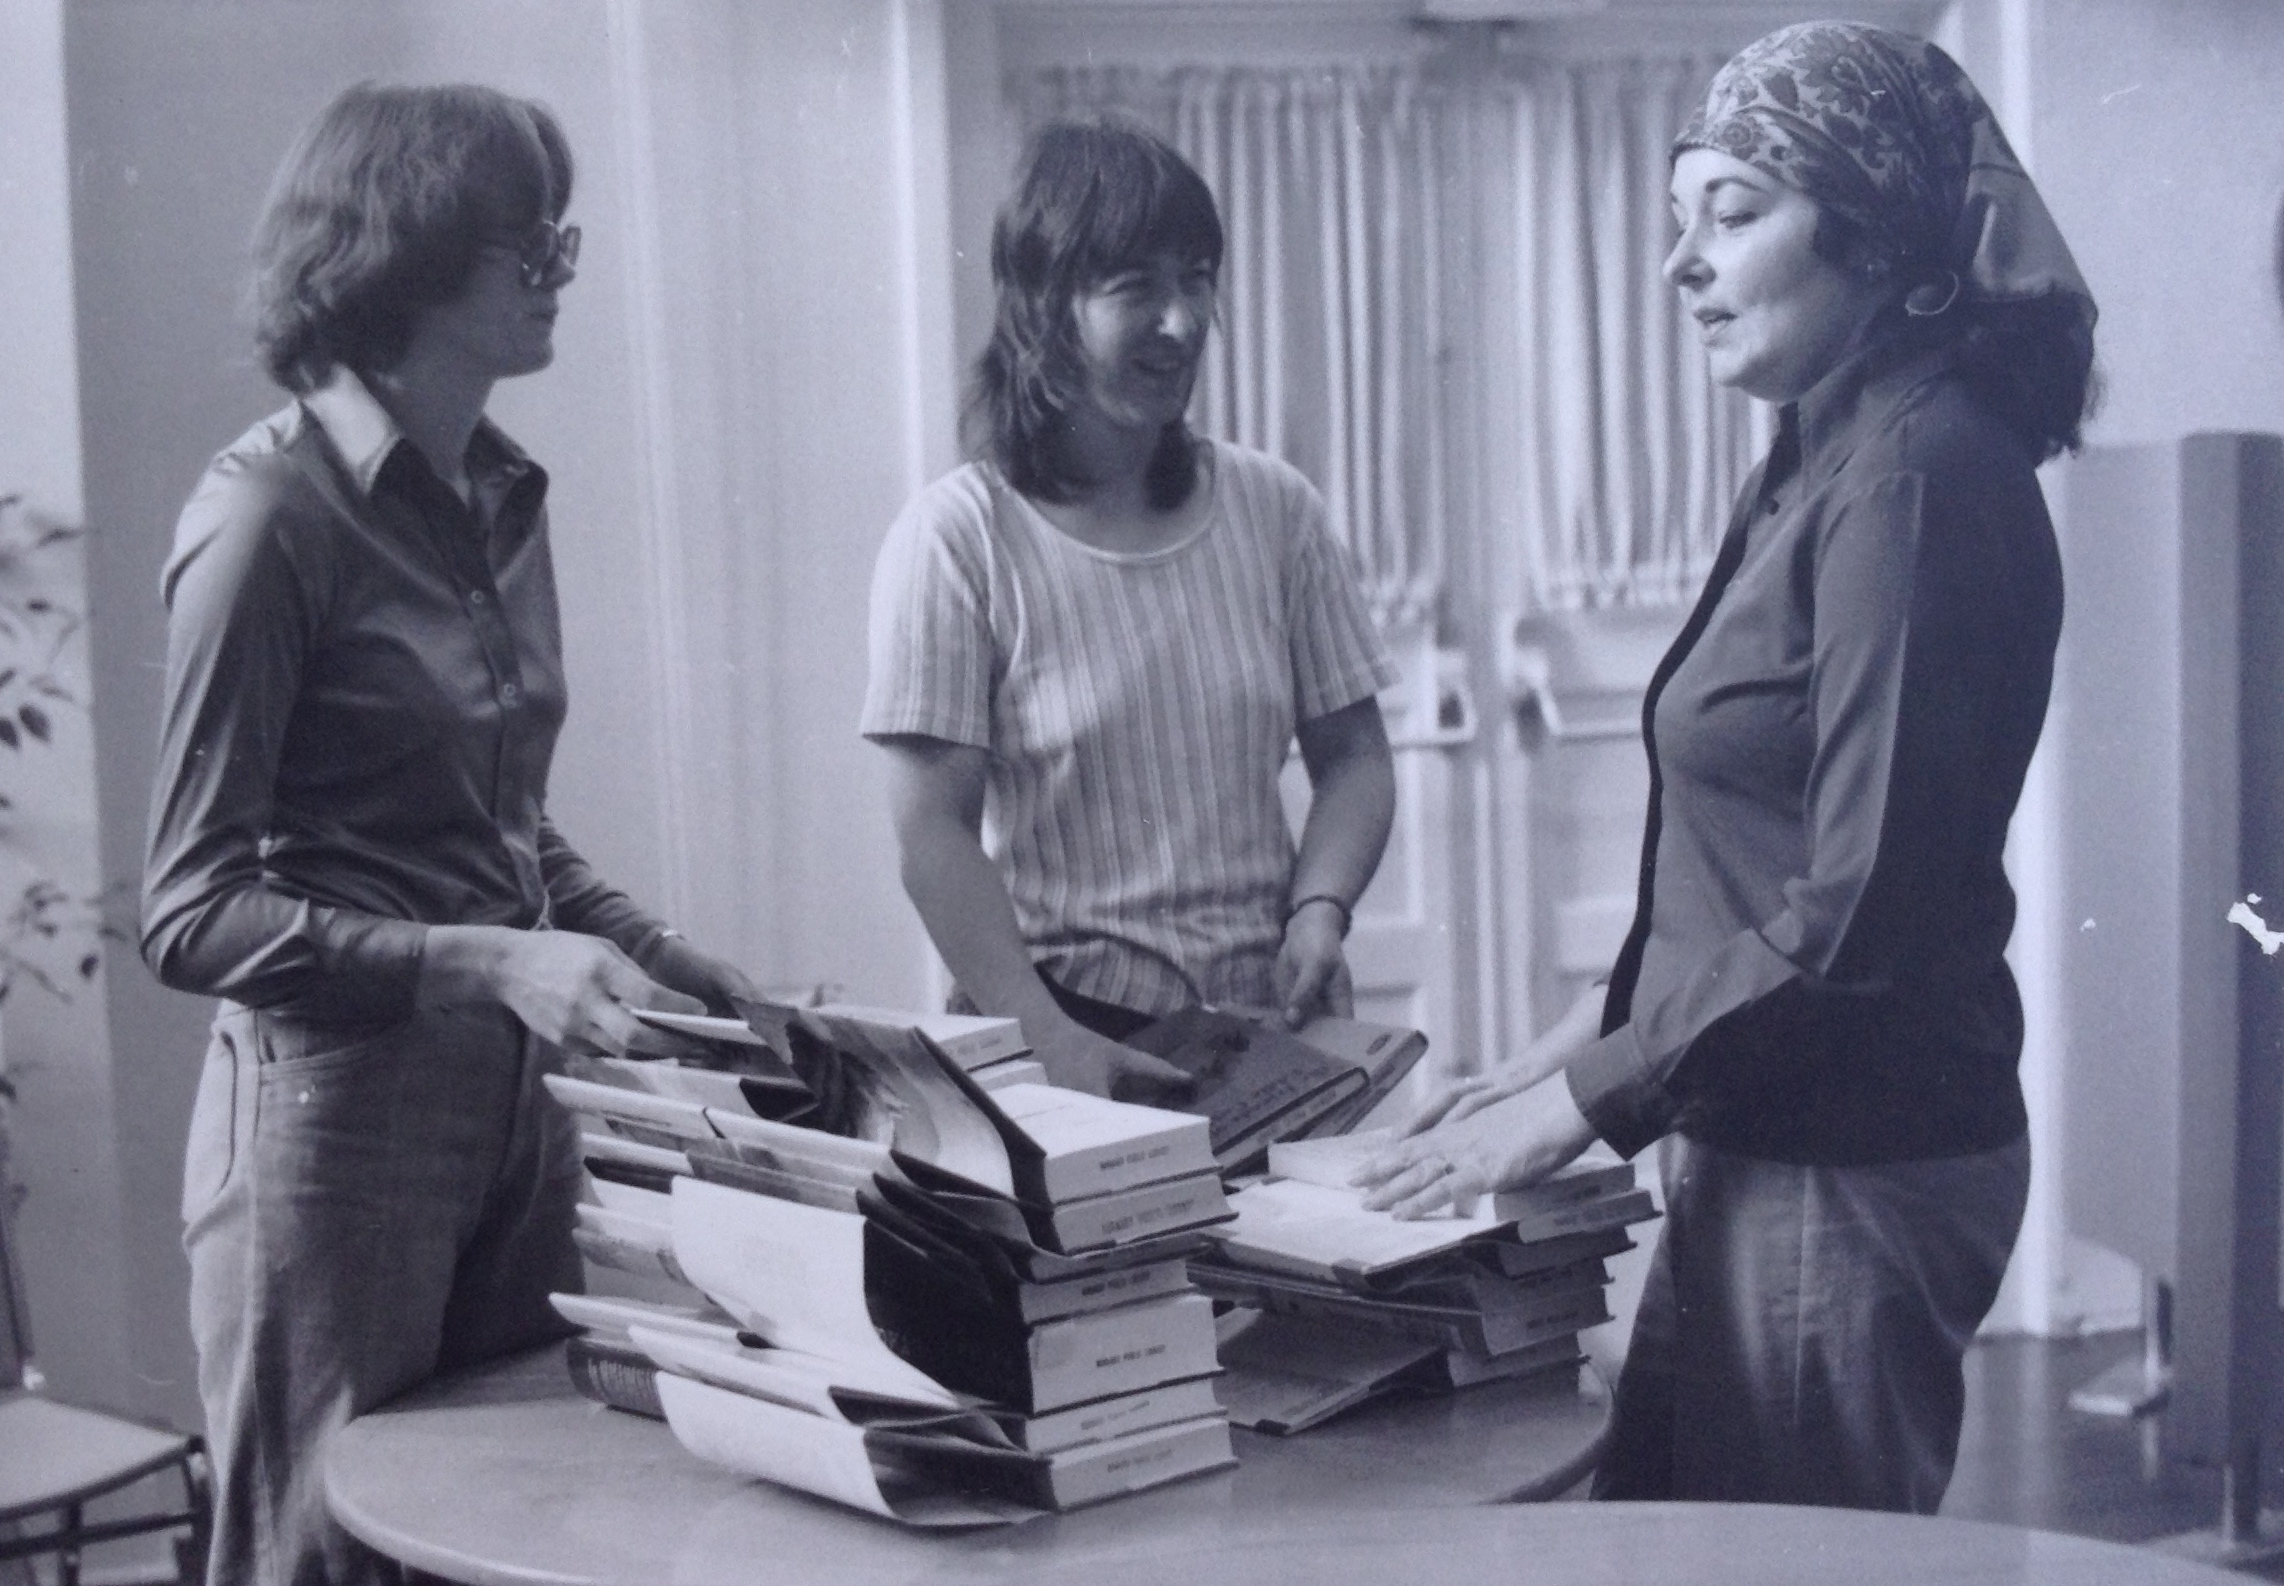 3 women standing together around a table filled with stacks of open library books